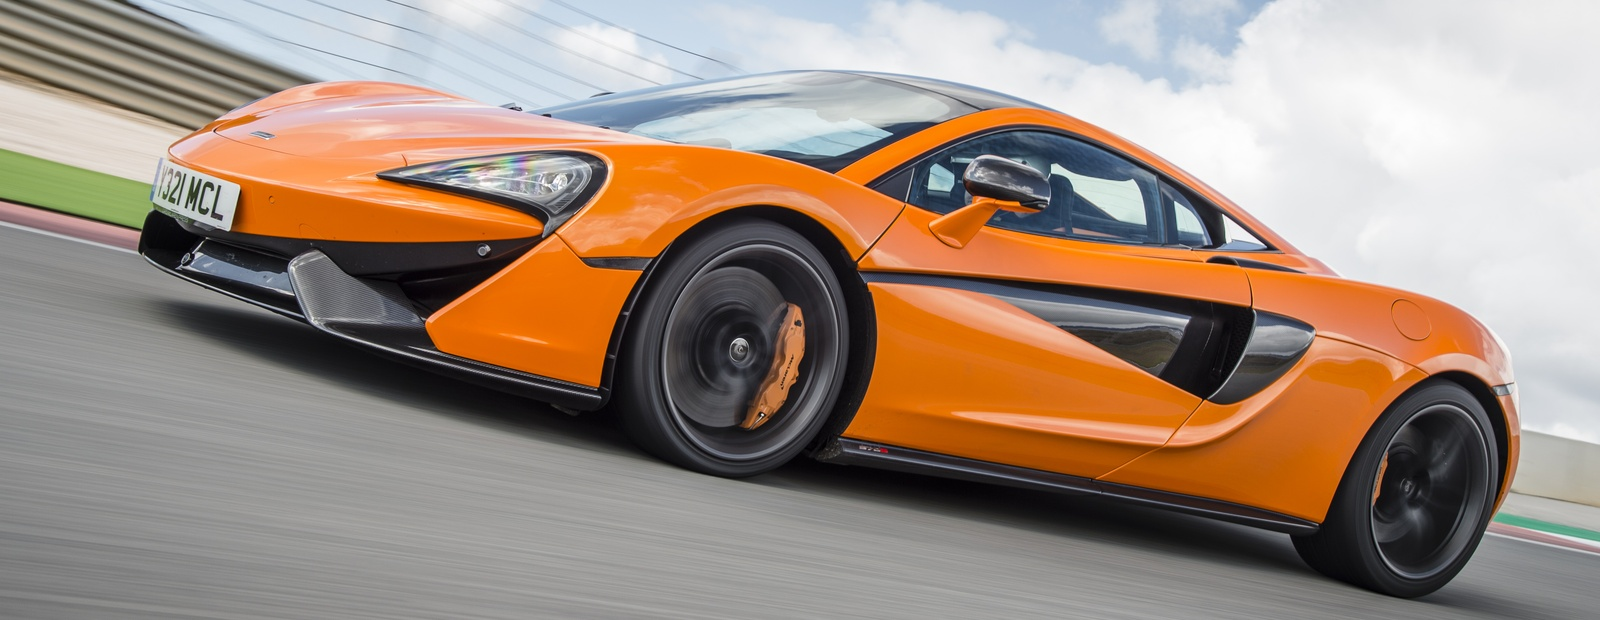 HOW McLAREN APPLIED IS PUTTING 5G CONNECTIVITY TO THE ULTIMATE TEST